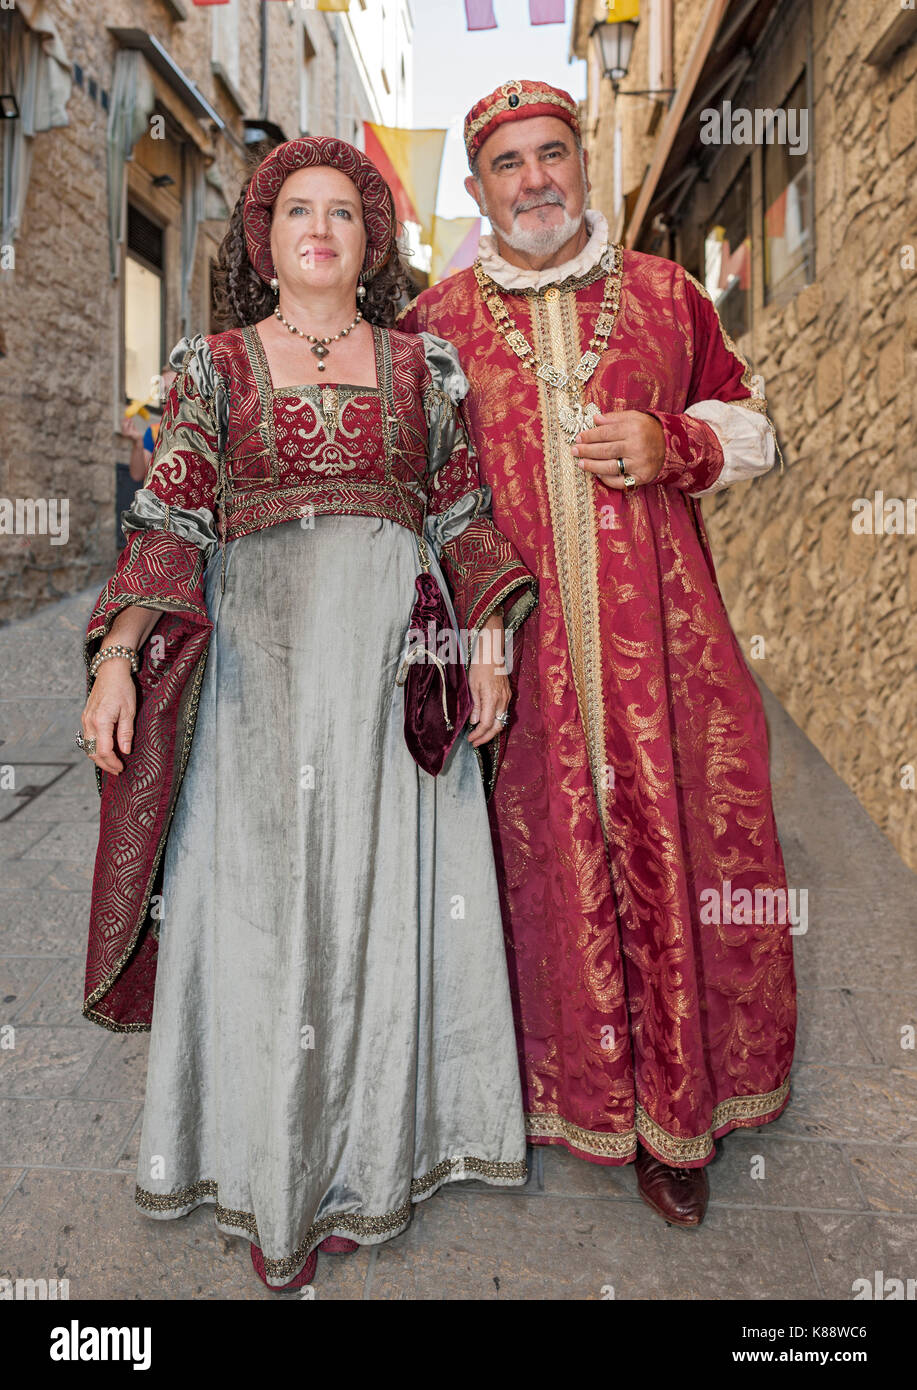 San Marini couple in period outfits for the annual Medieval Days Festival held in the old town of San Marino in - Stock Image